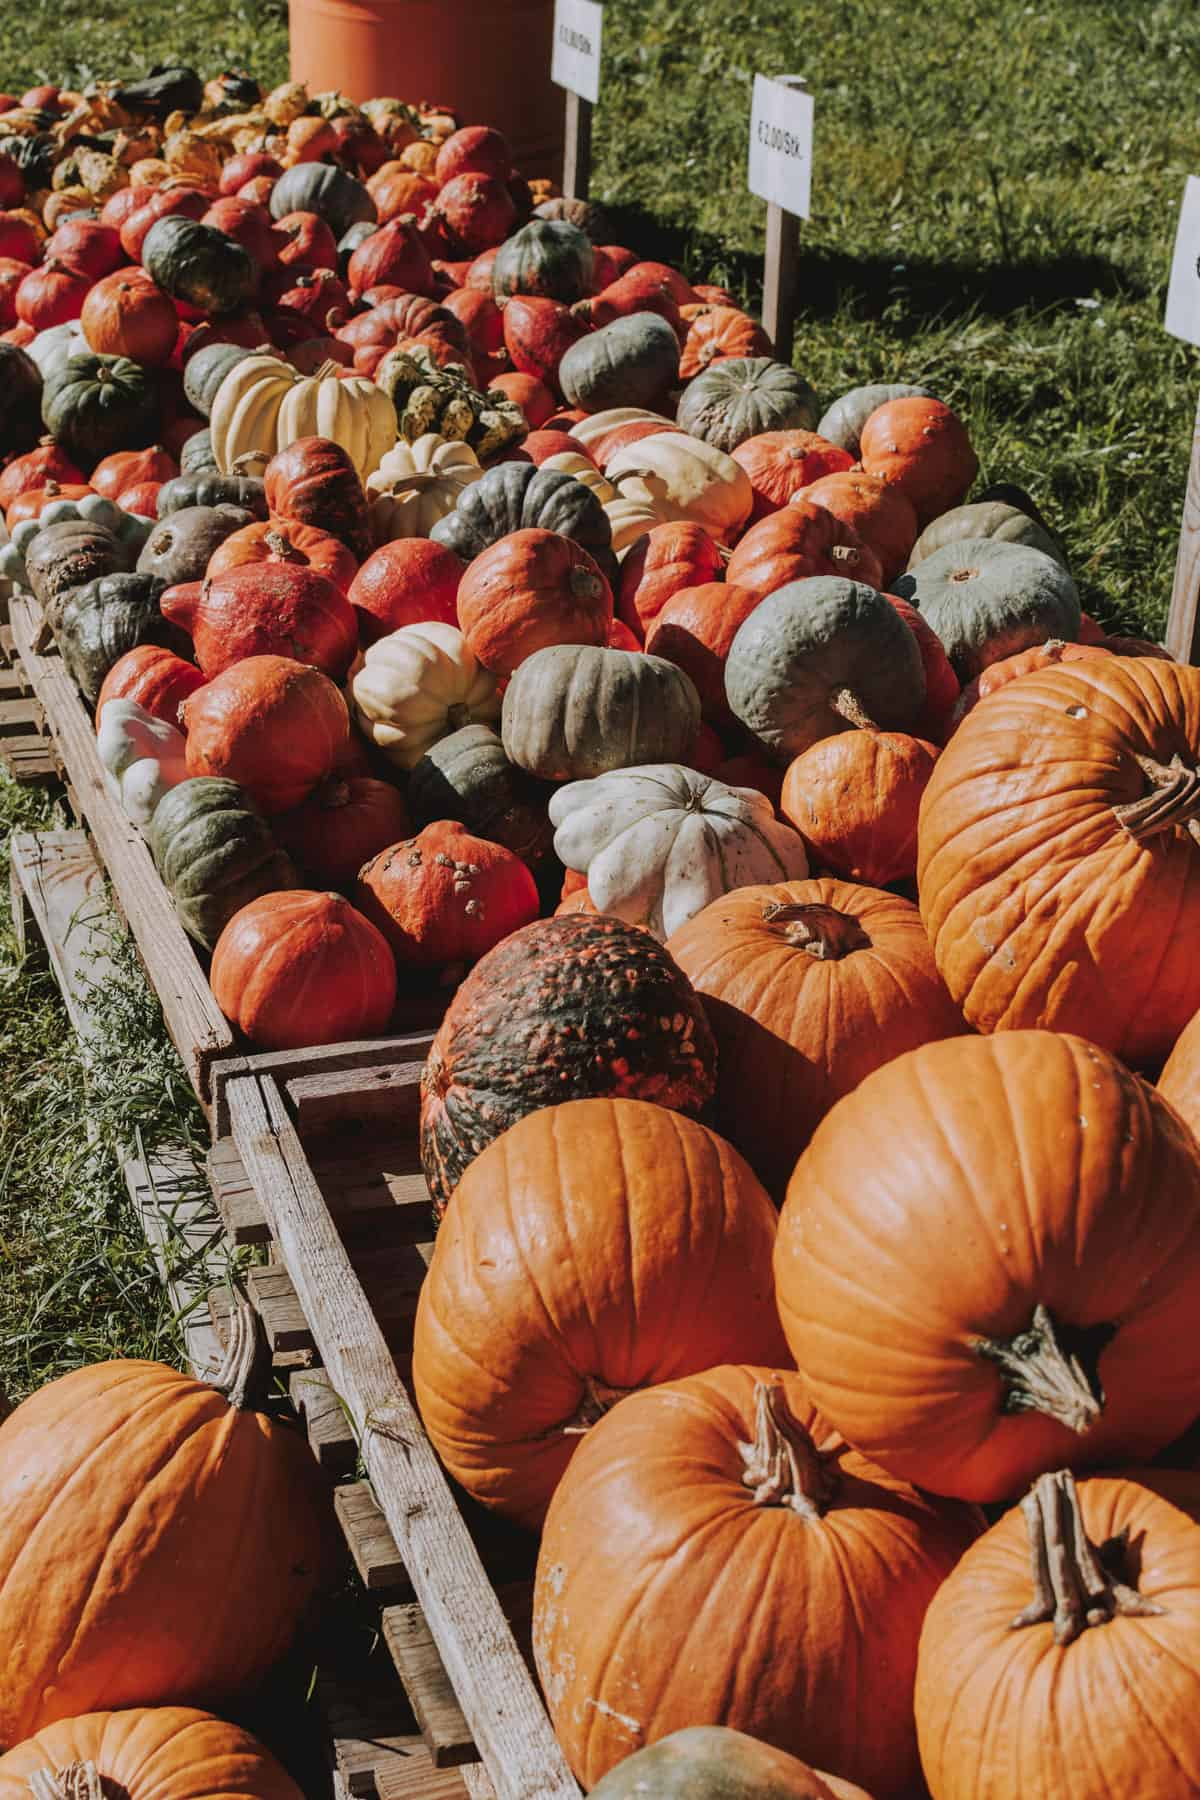 Variety of different pumpkins in large wooden crates for sale at a farmstand.